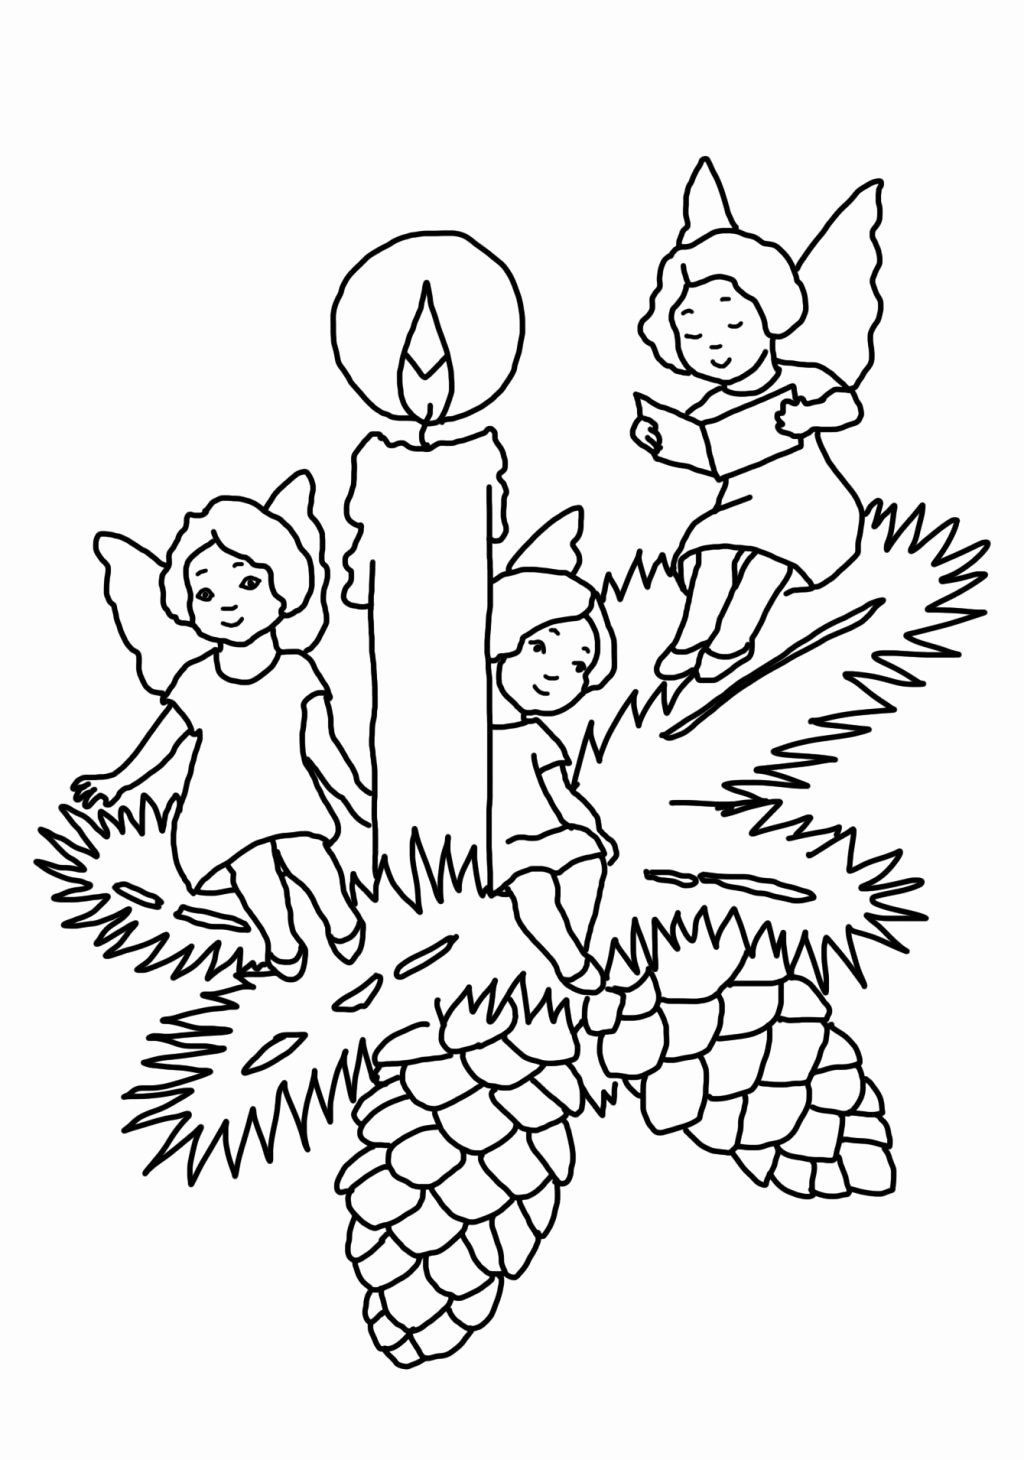 Little Boy Coloring Pages Printable Best Of Coloring Pages